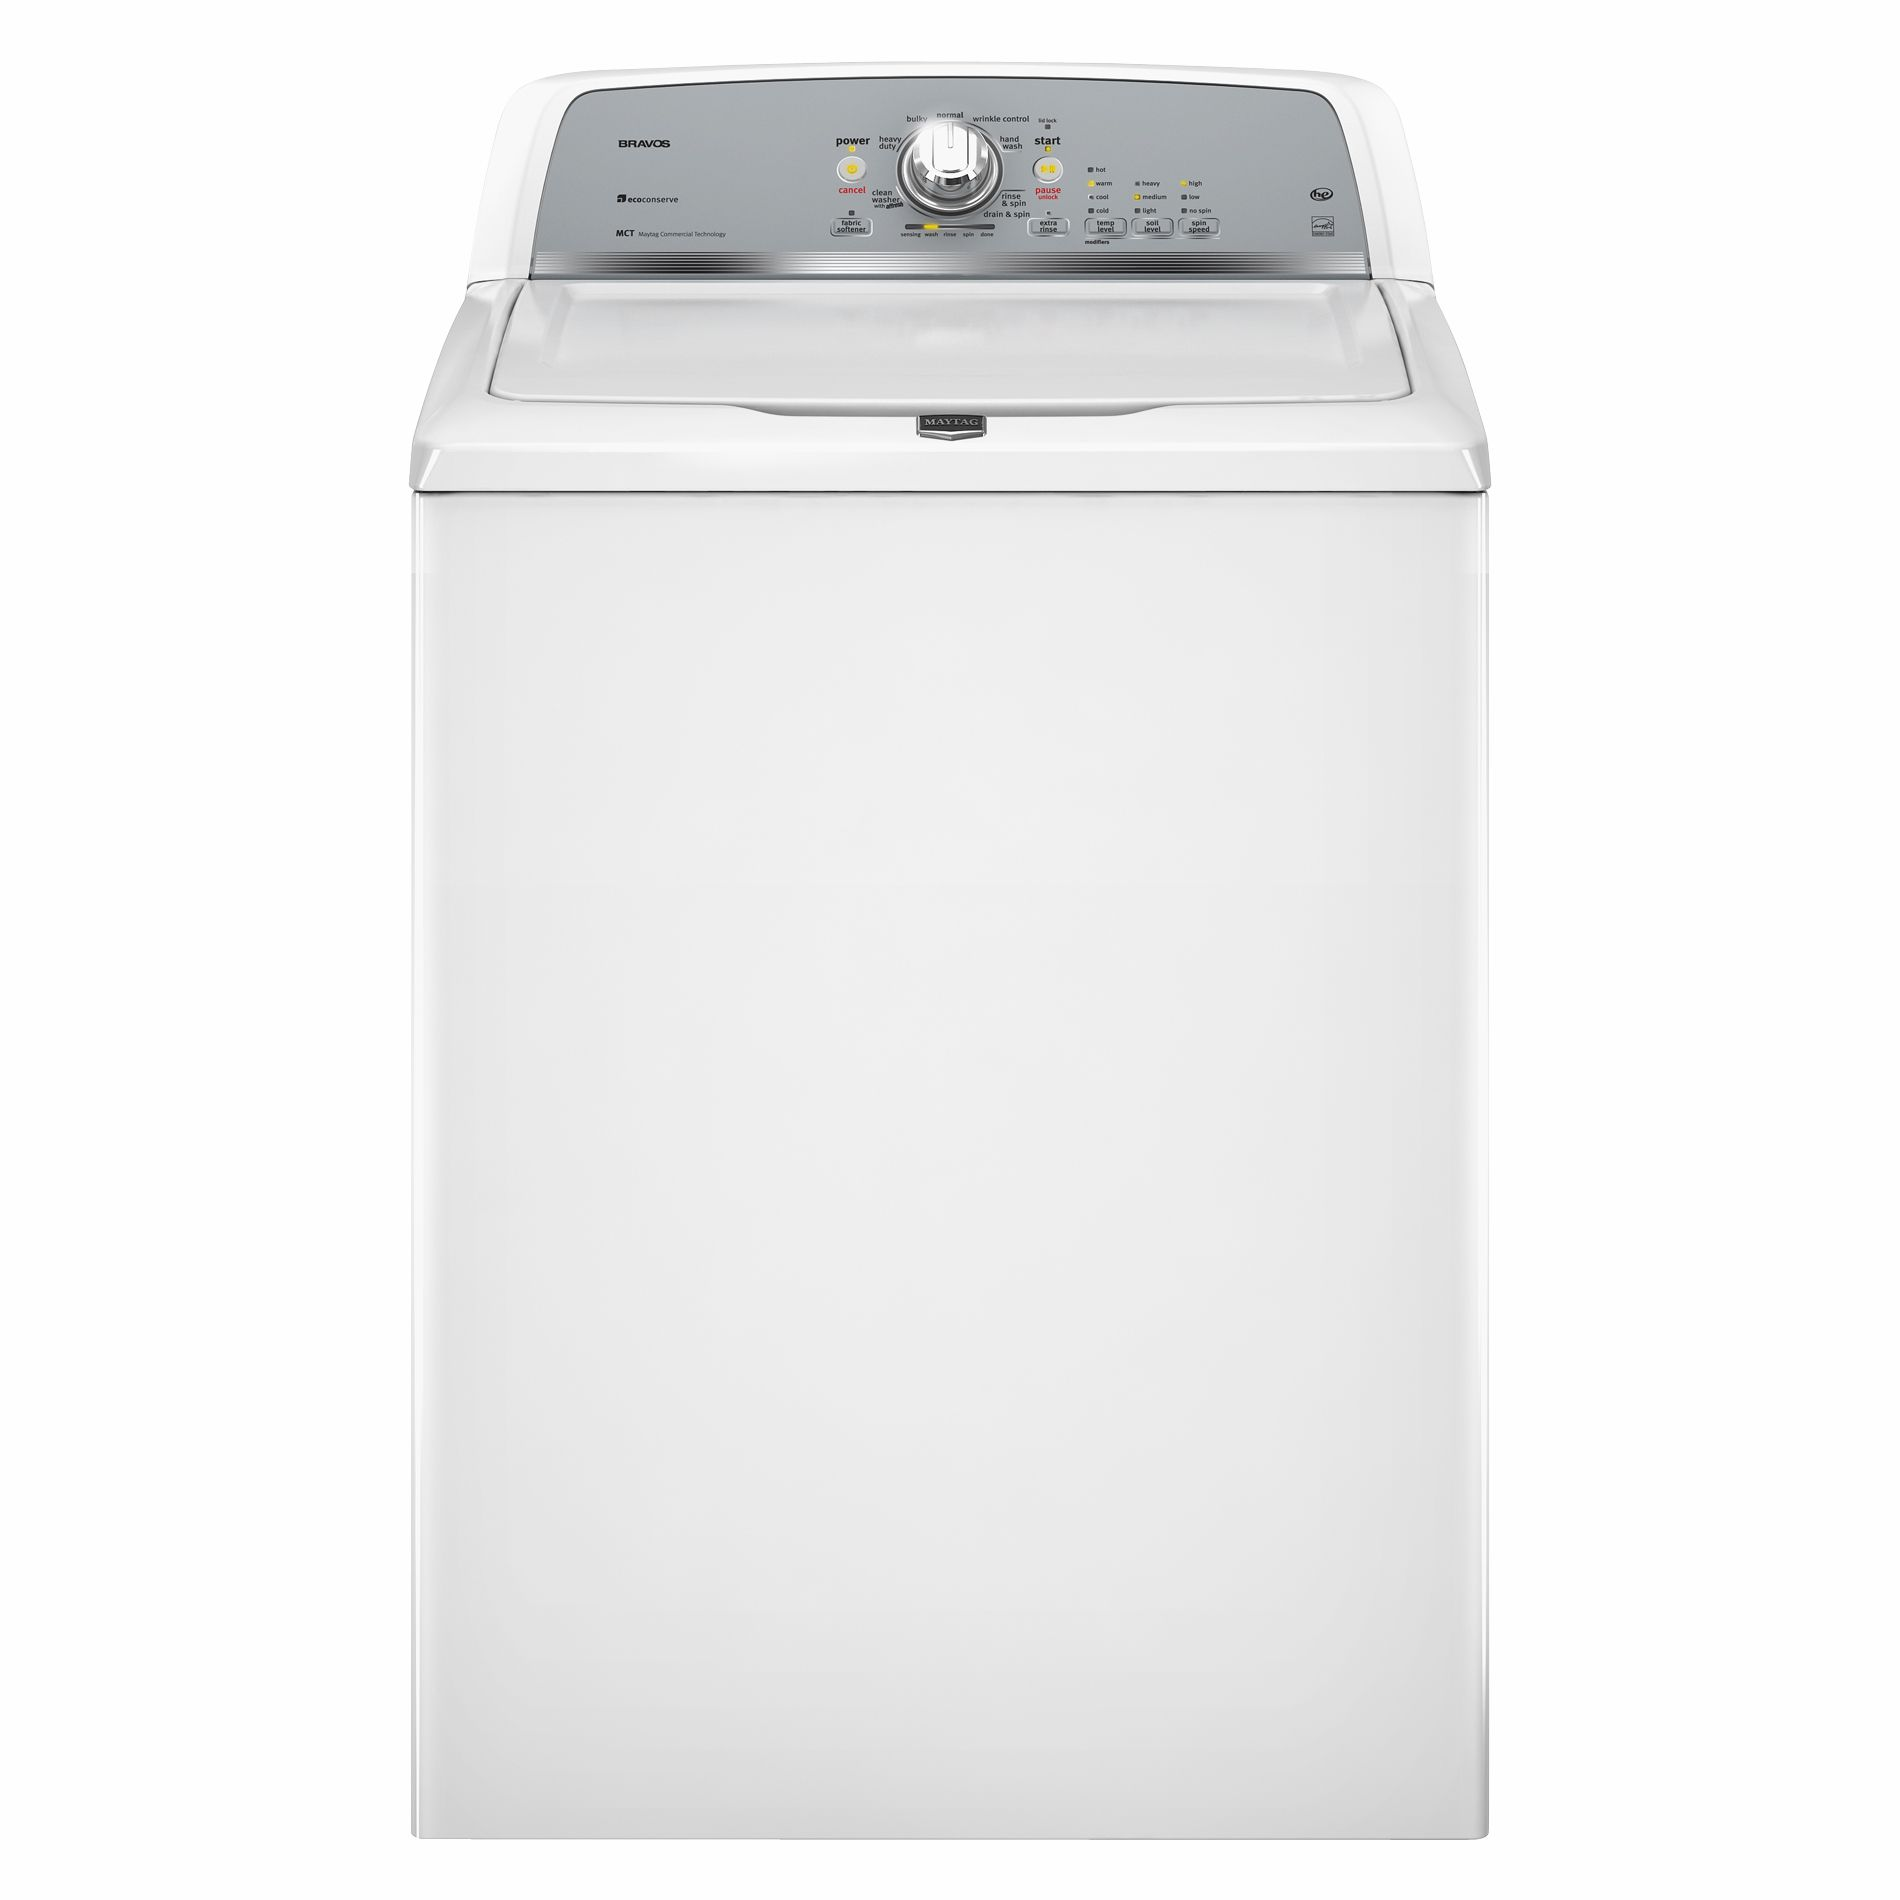 Maytag Bravos X 3.6 cu. ft. High-Efficiency Top-Load  Washer w/ Low-Water Wash - White